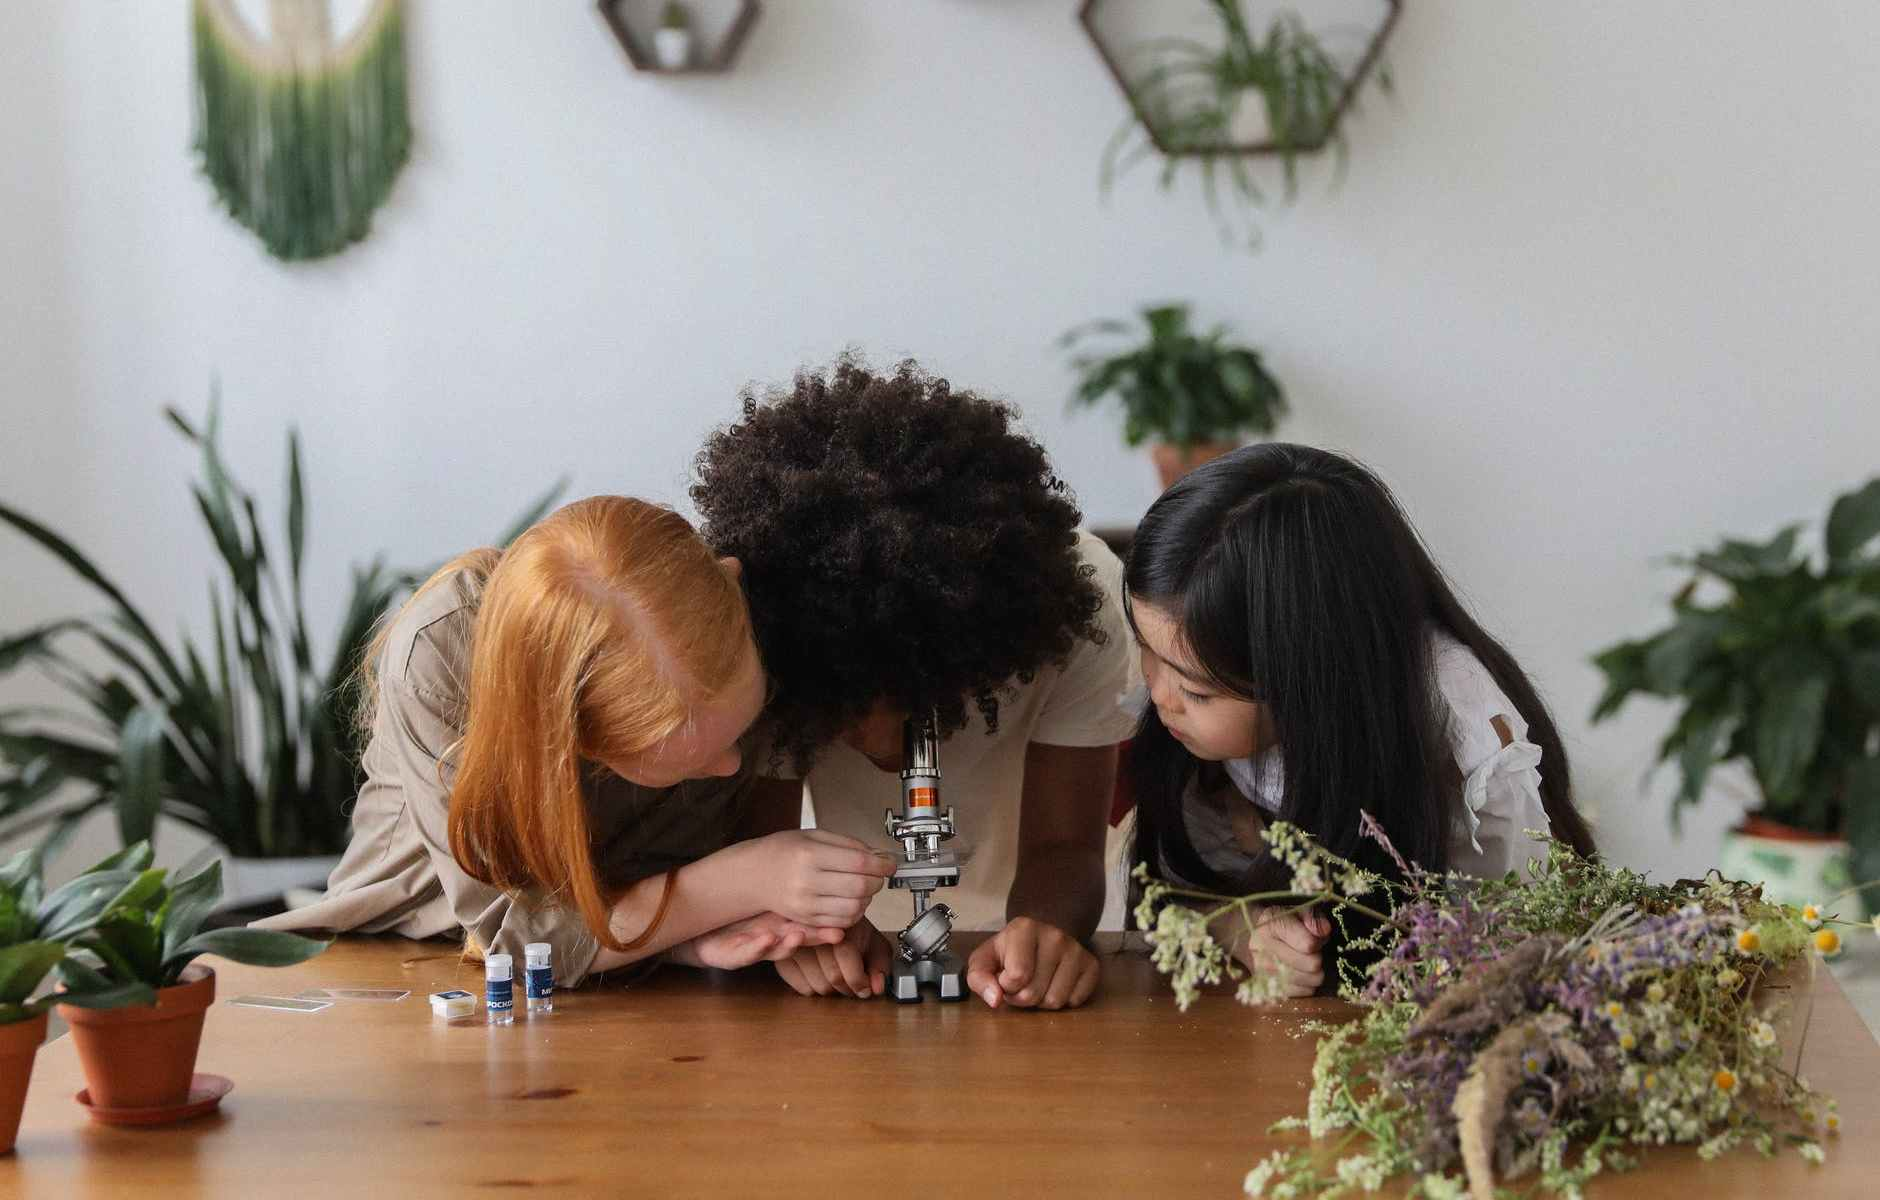 photo of young girls looking through microscope